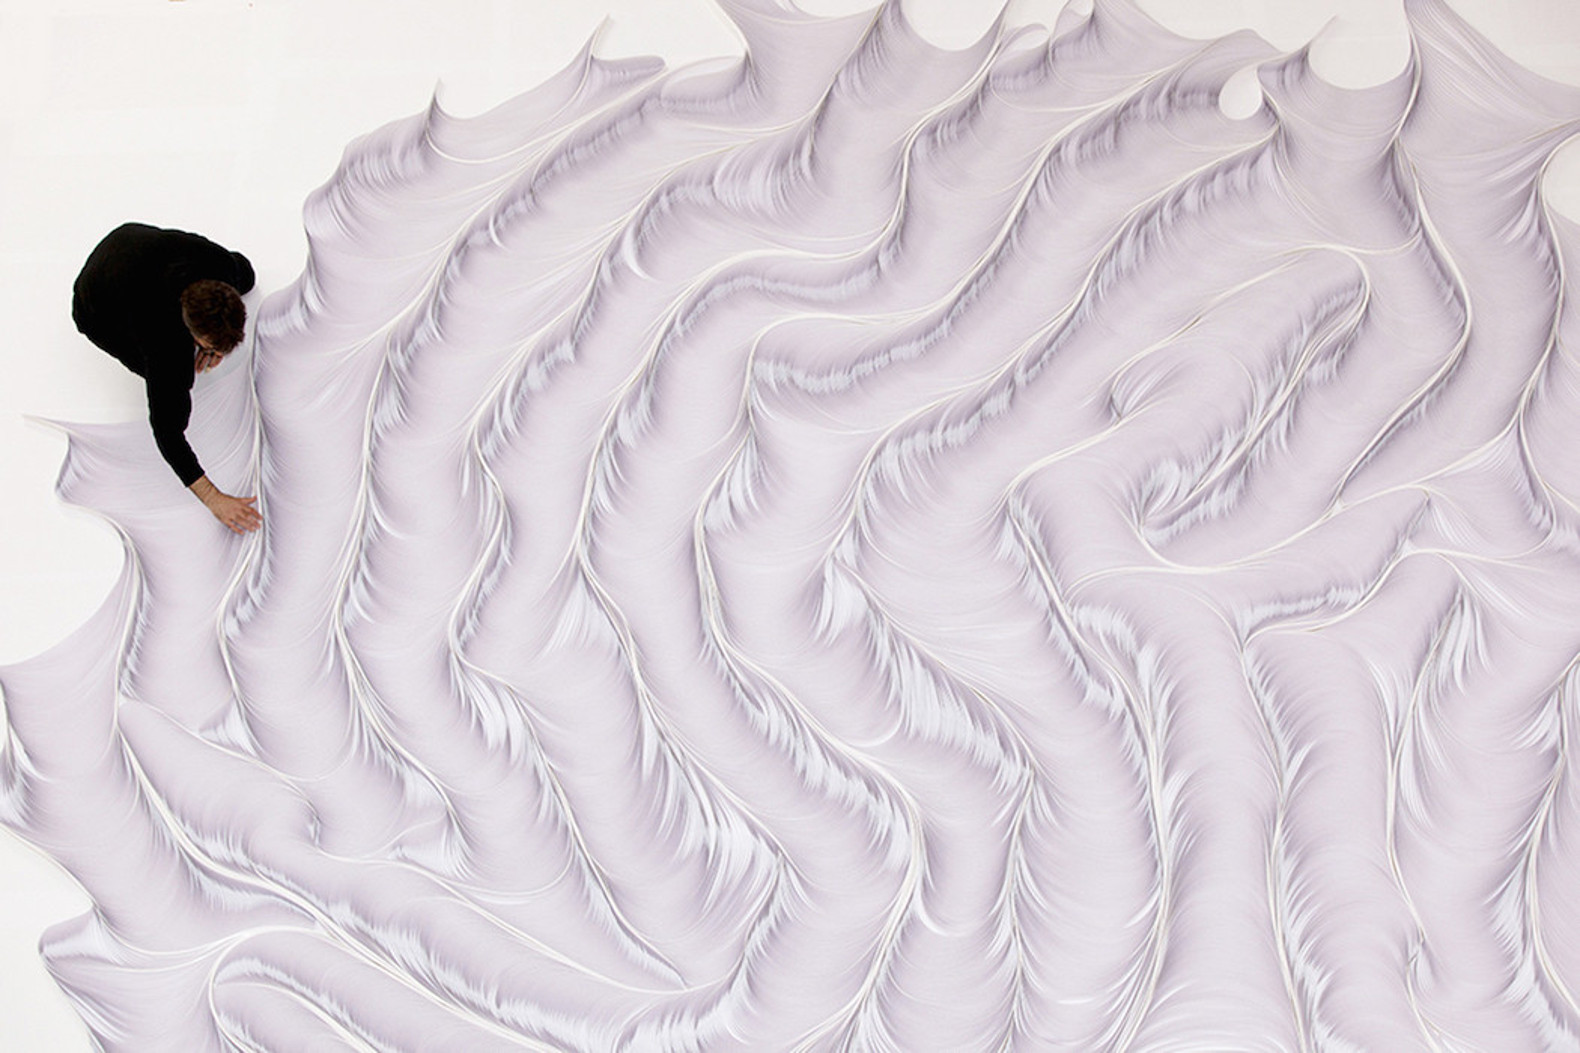 Milan artist creates remarkable handcrafted wave sculptures out of paper